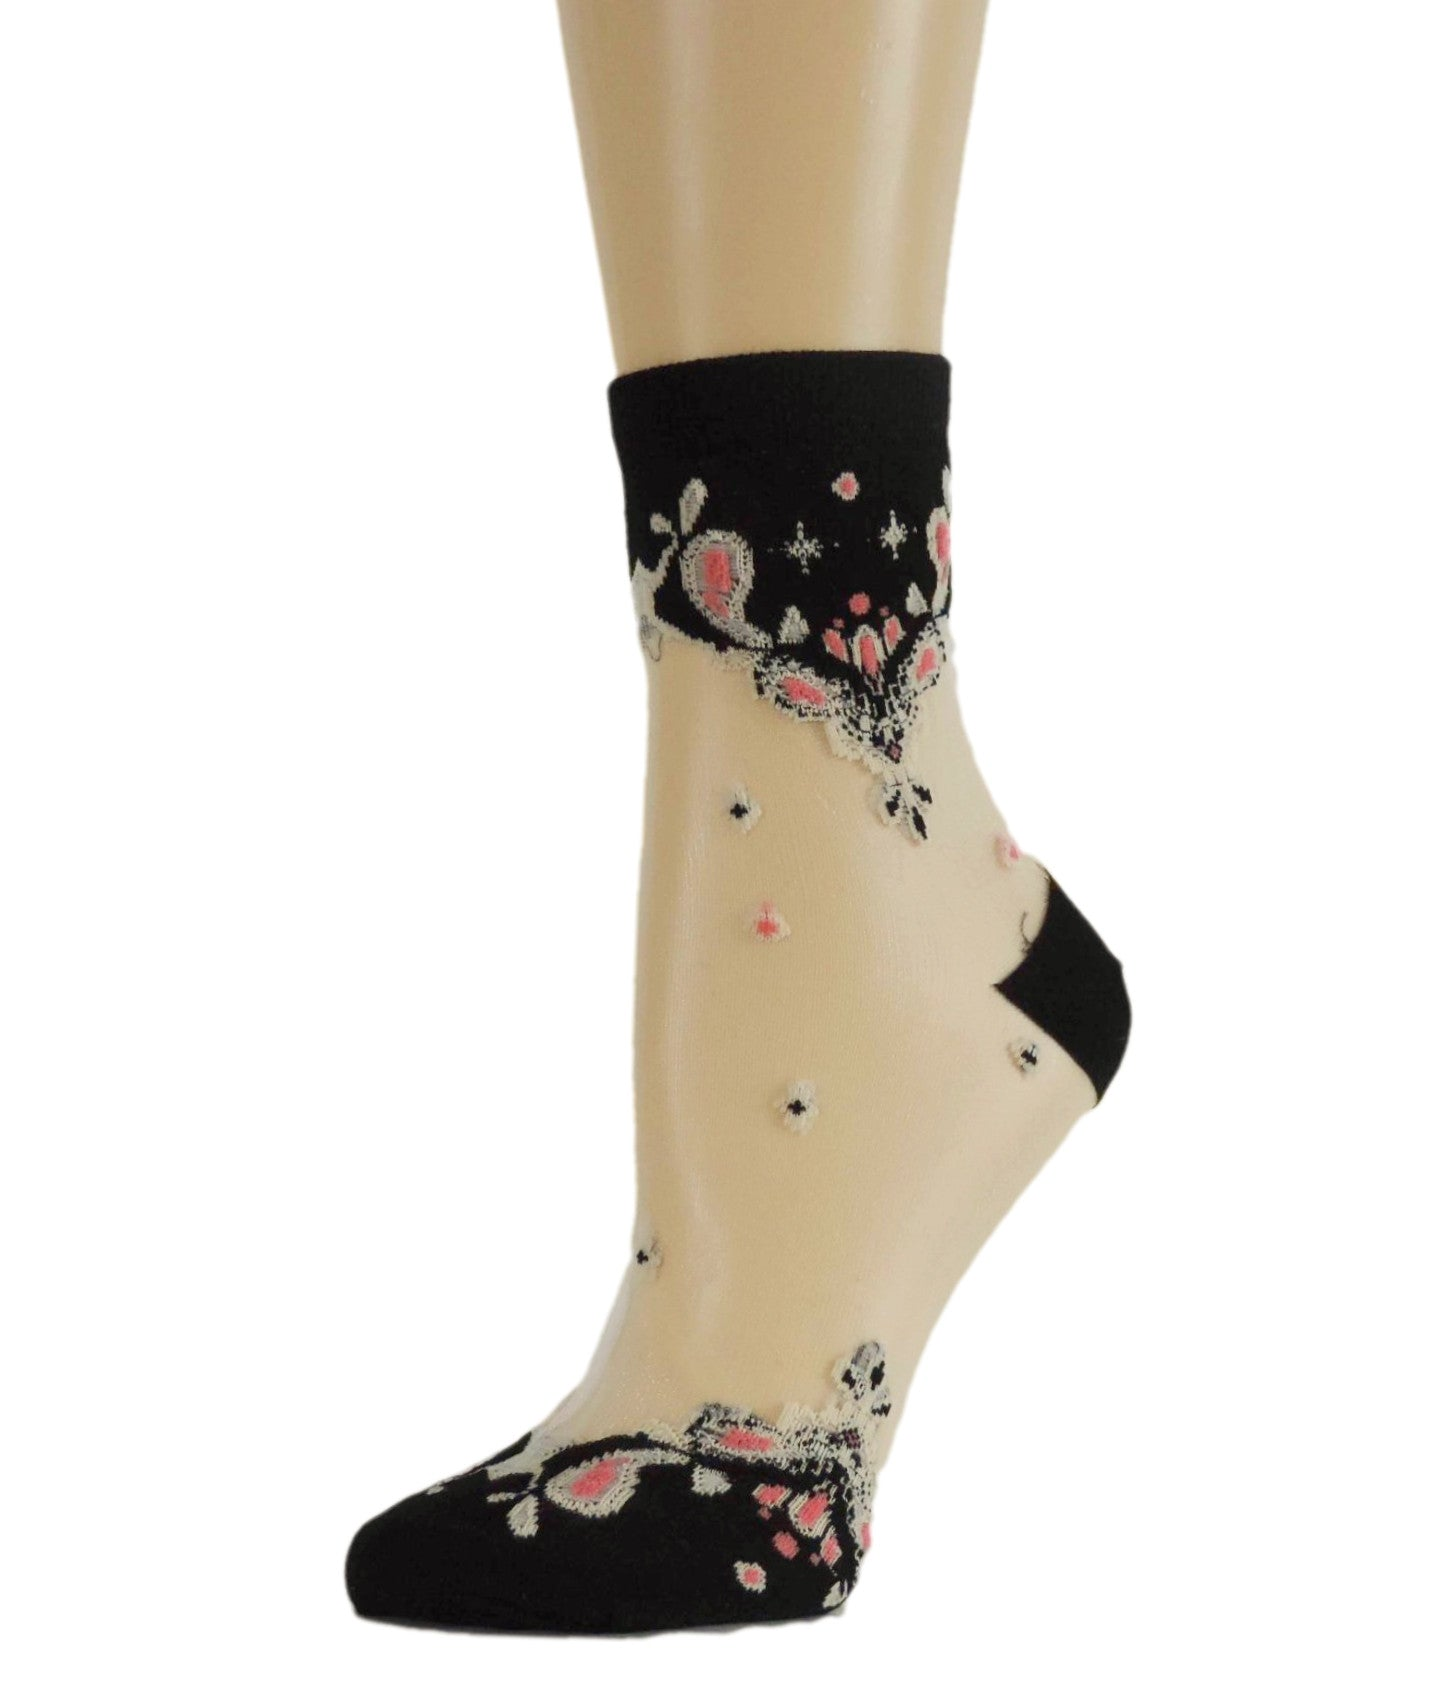 Royal Chandelier Sheer Socks - Global Trendz Fashion®